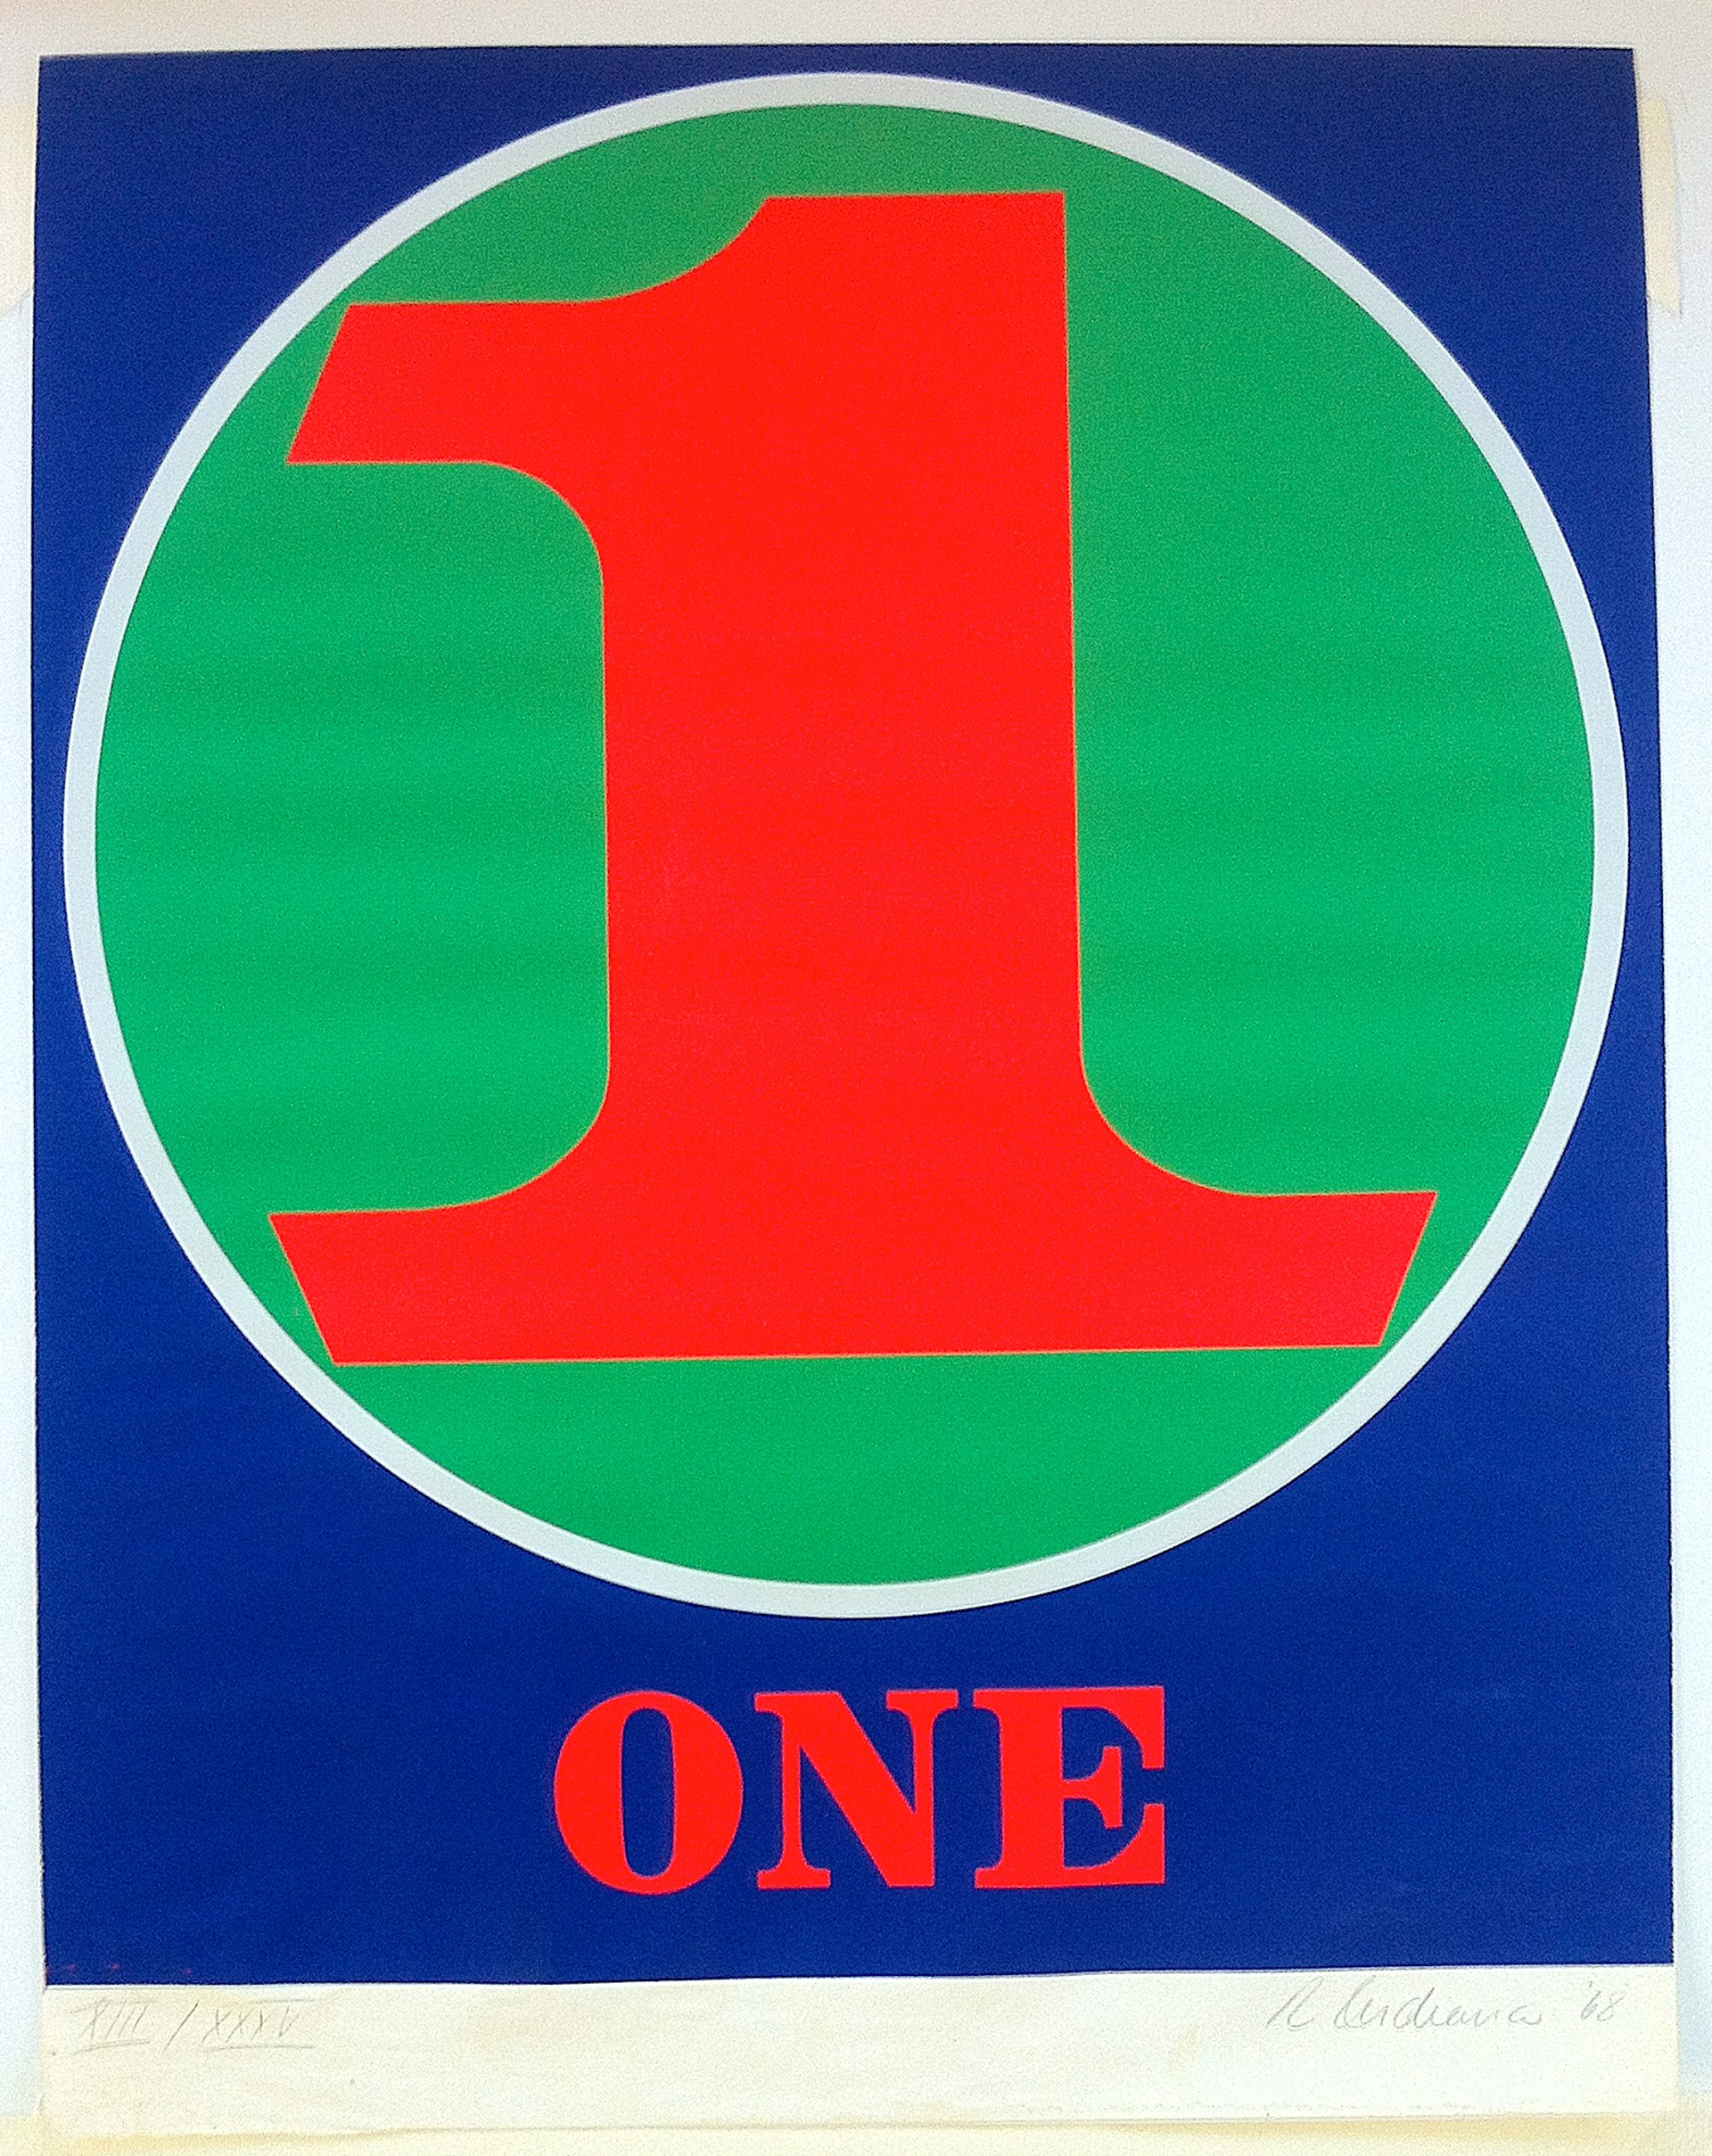 One, from Numbers portfolio by Robert Indiana